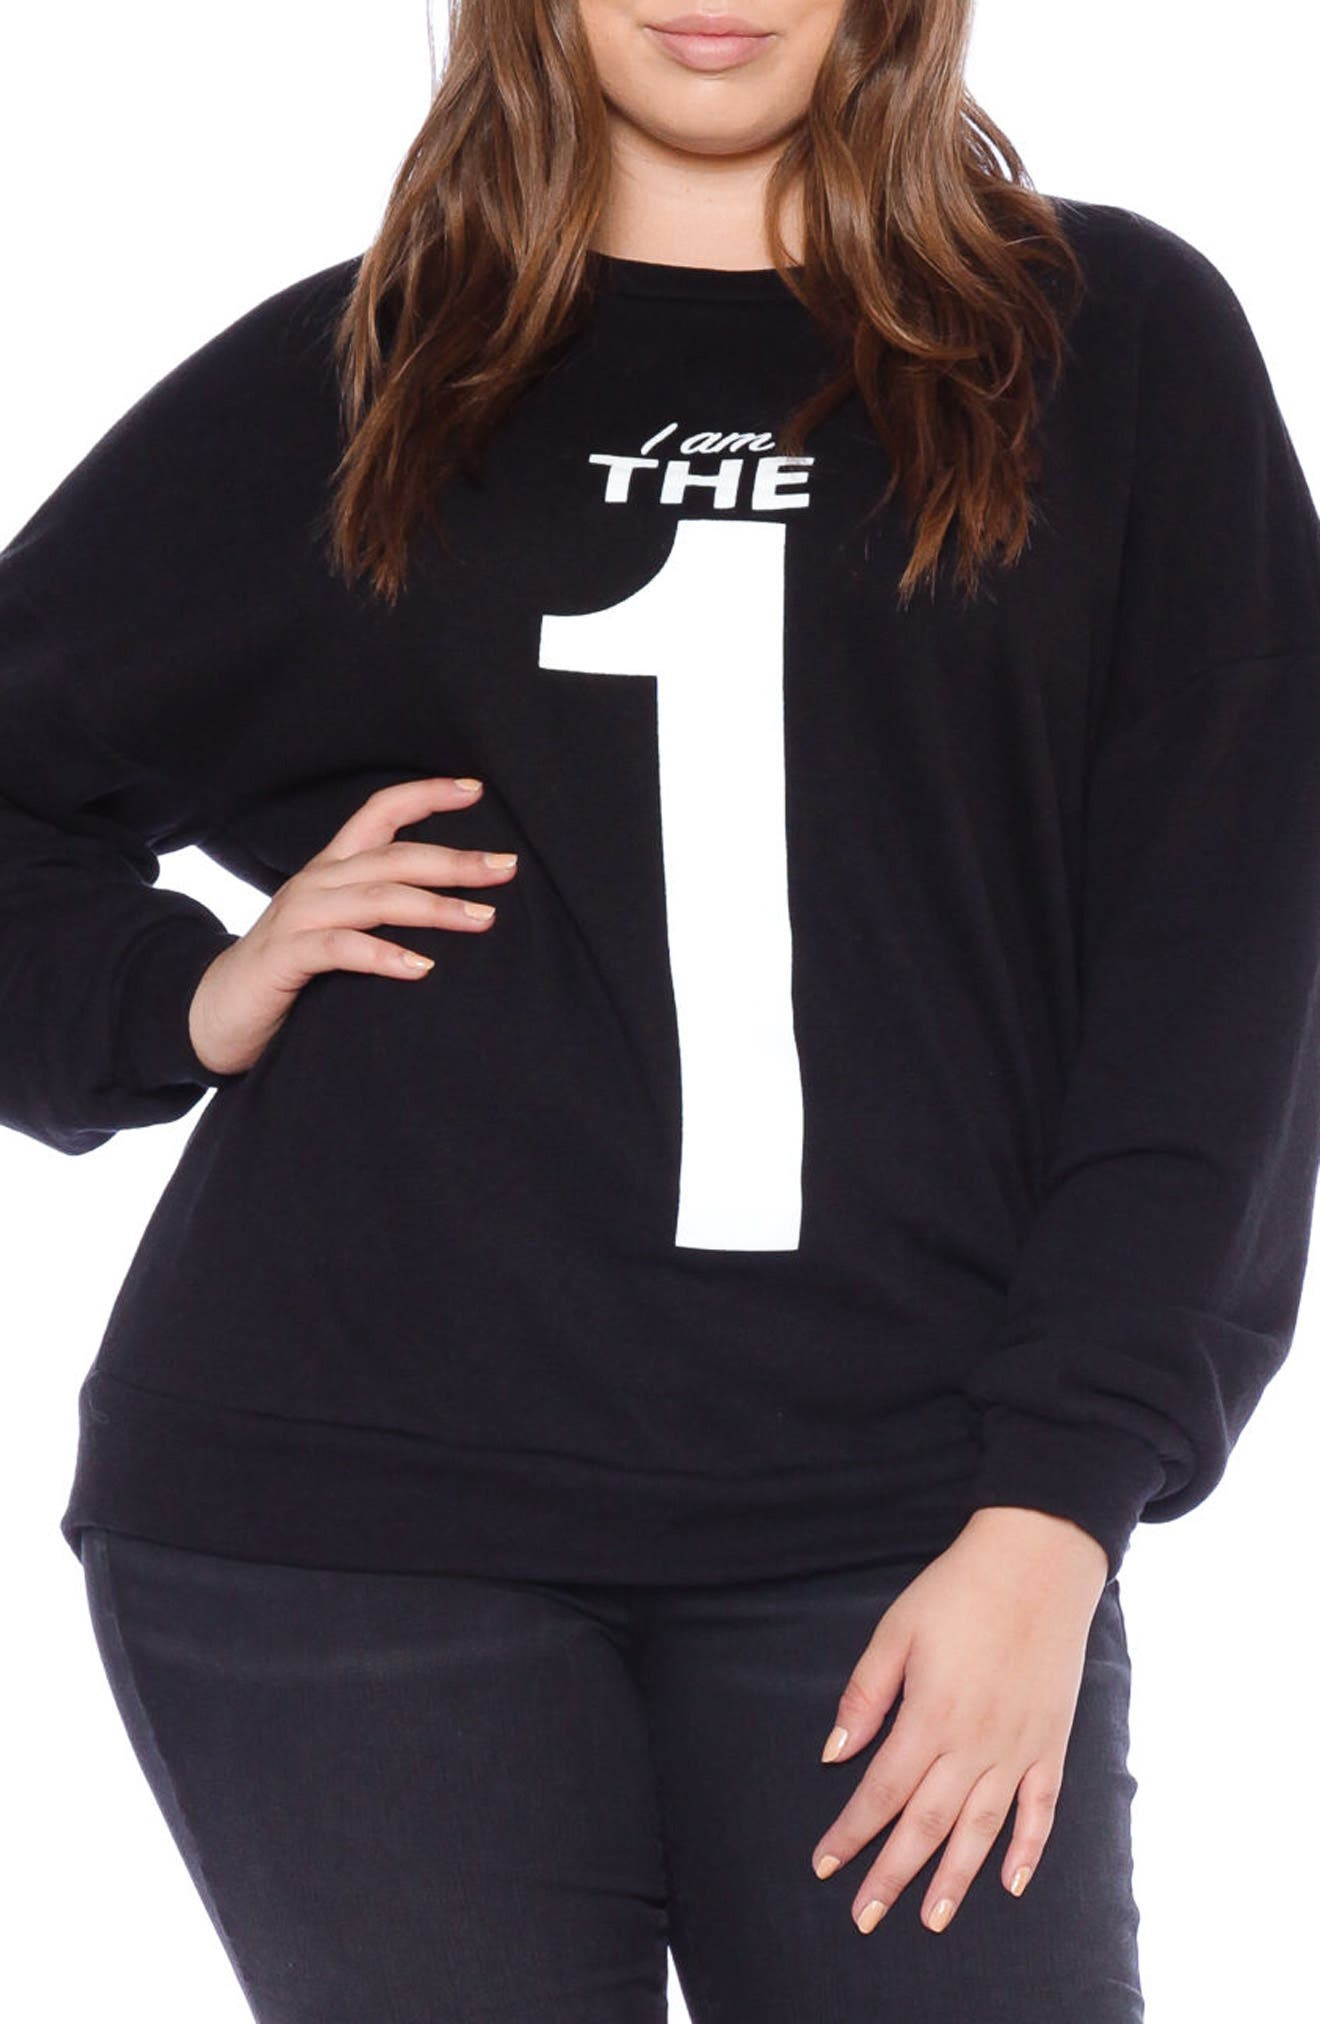 I Am the One Oversize Sweatshirt,                             Main thumbnail 1, color,                             BLACK